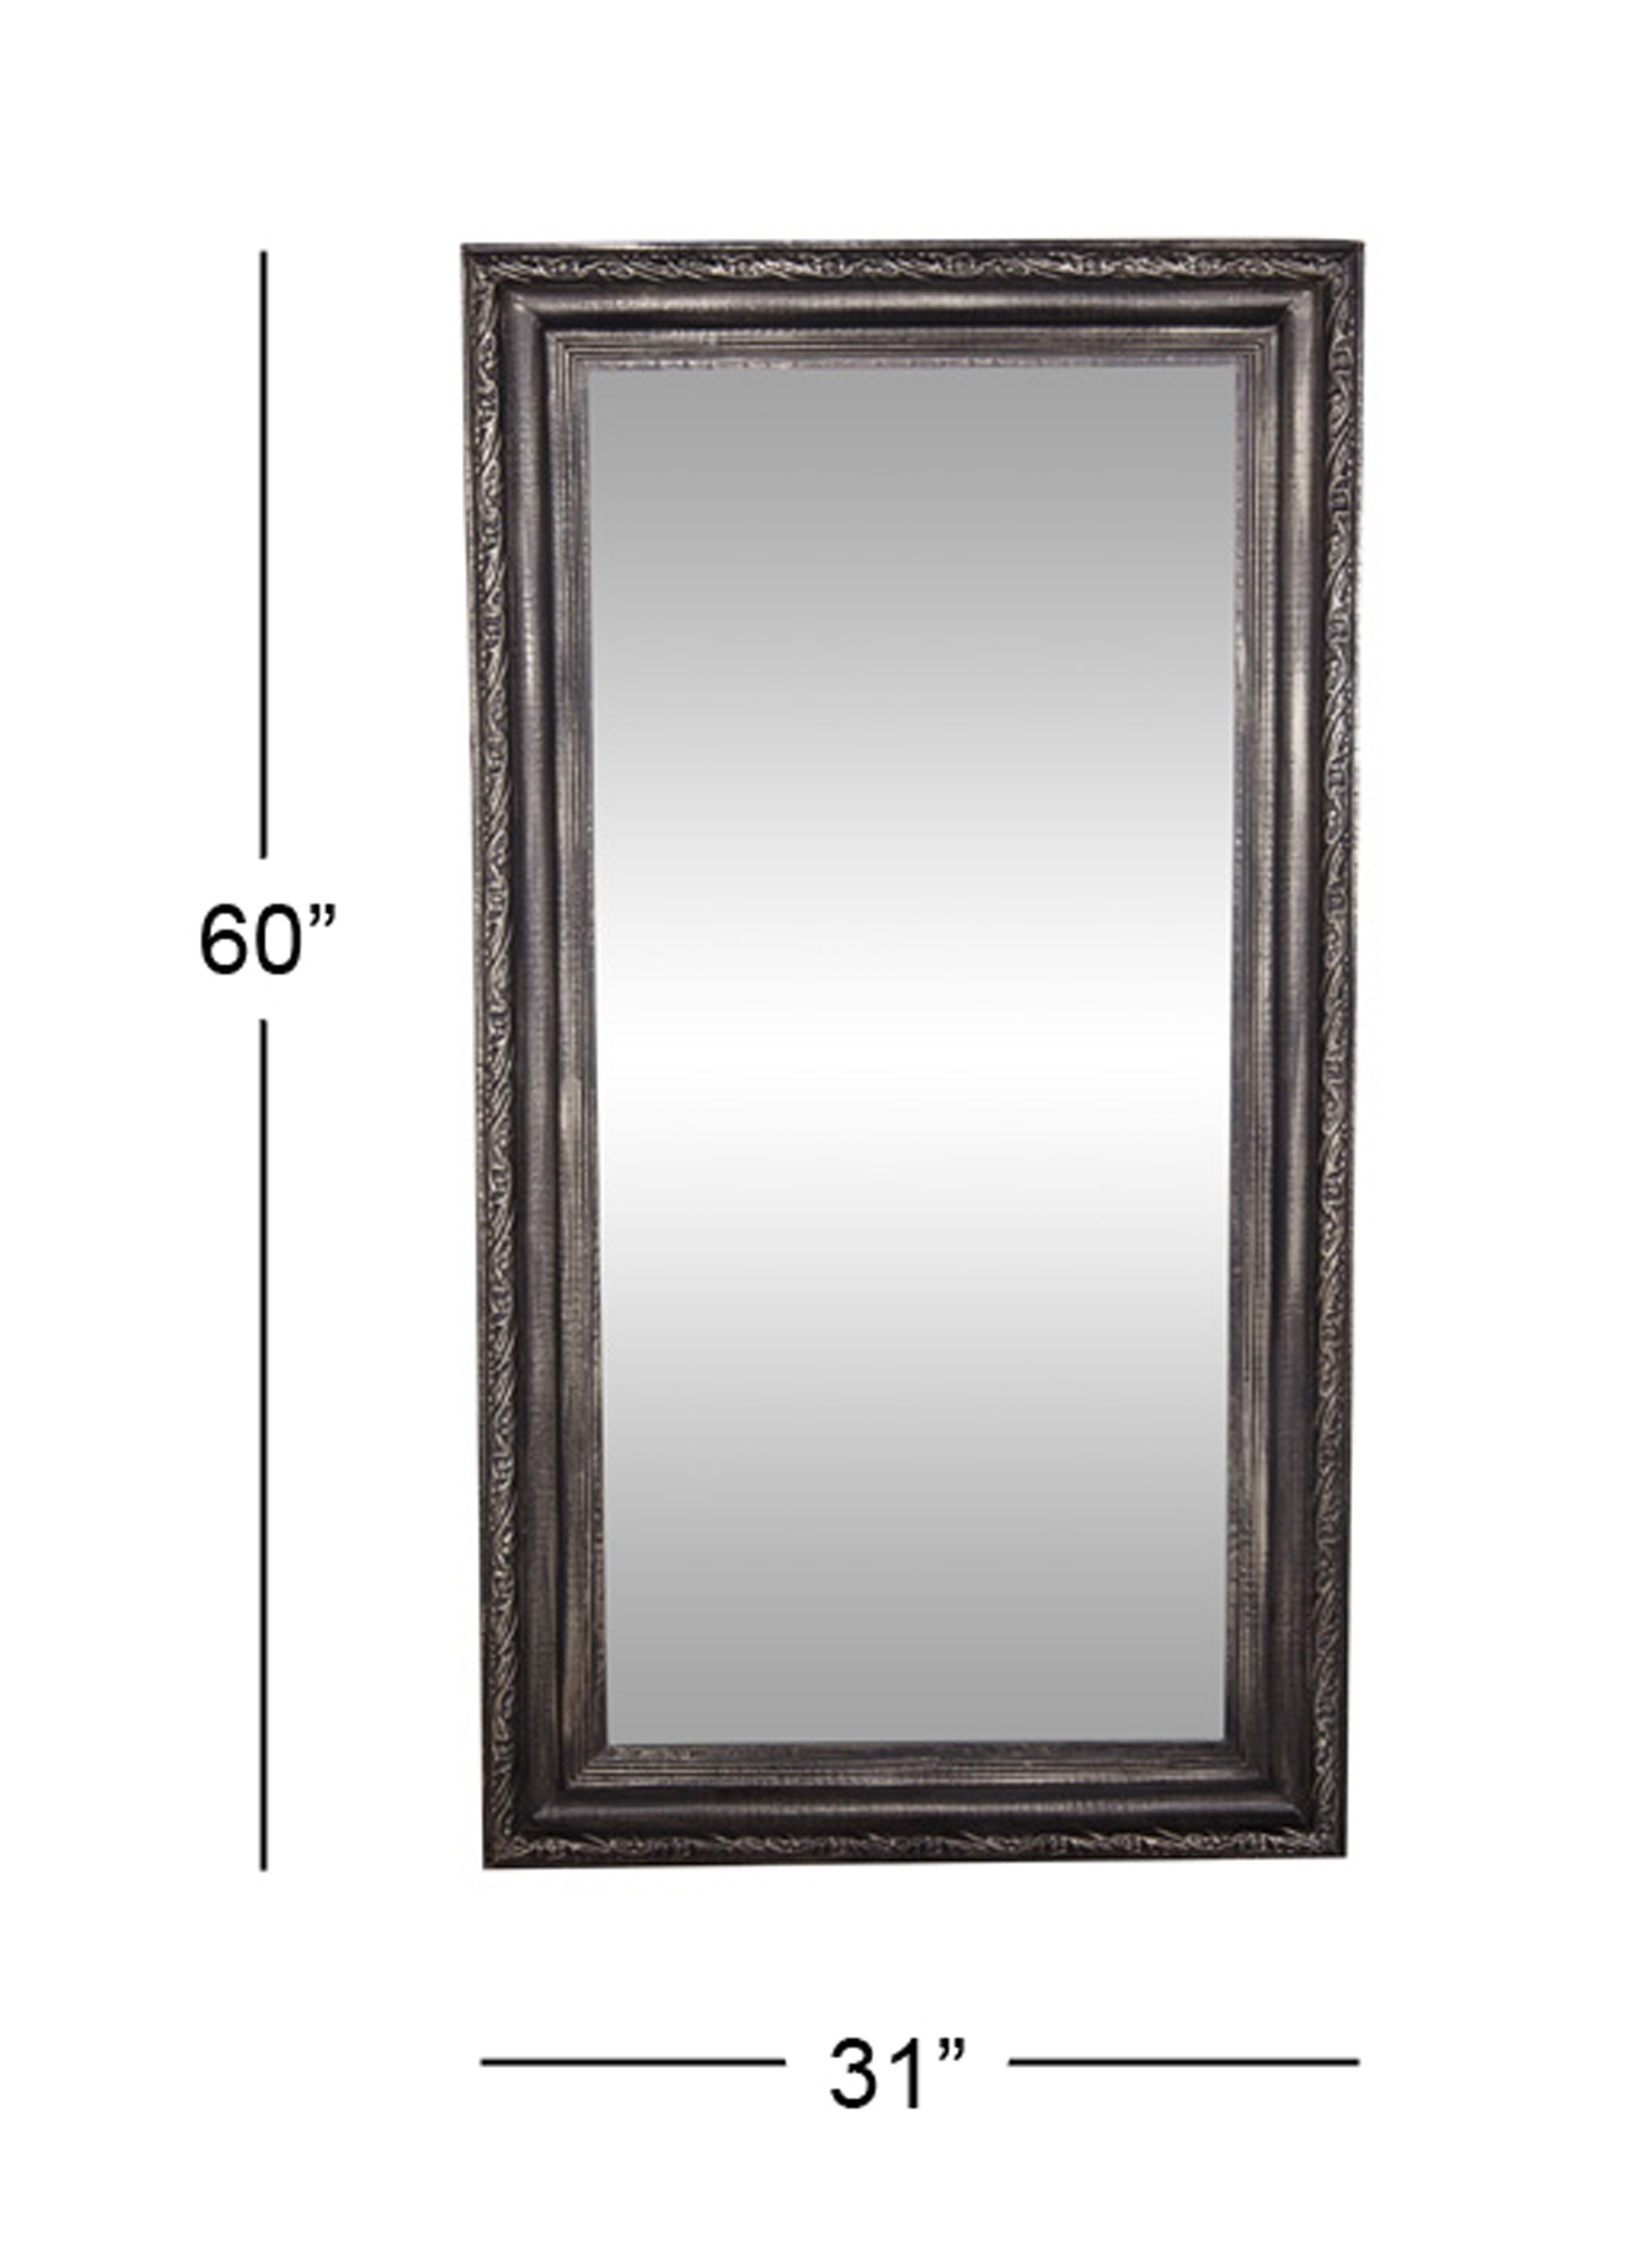 Decmode Traditional 60 X 32 Inch Black Wood And Metal Rectangular Wall Mirror Inside Traditional Metal Wall Mirrors (Gallery 28 of 30)